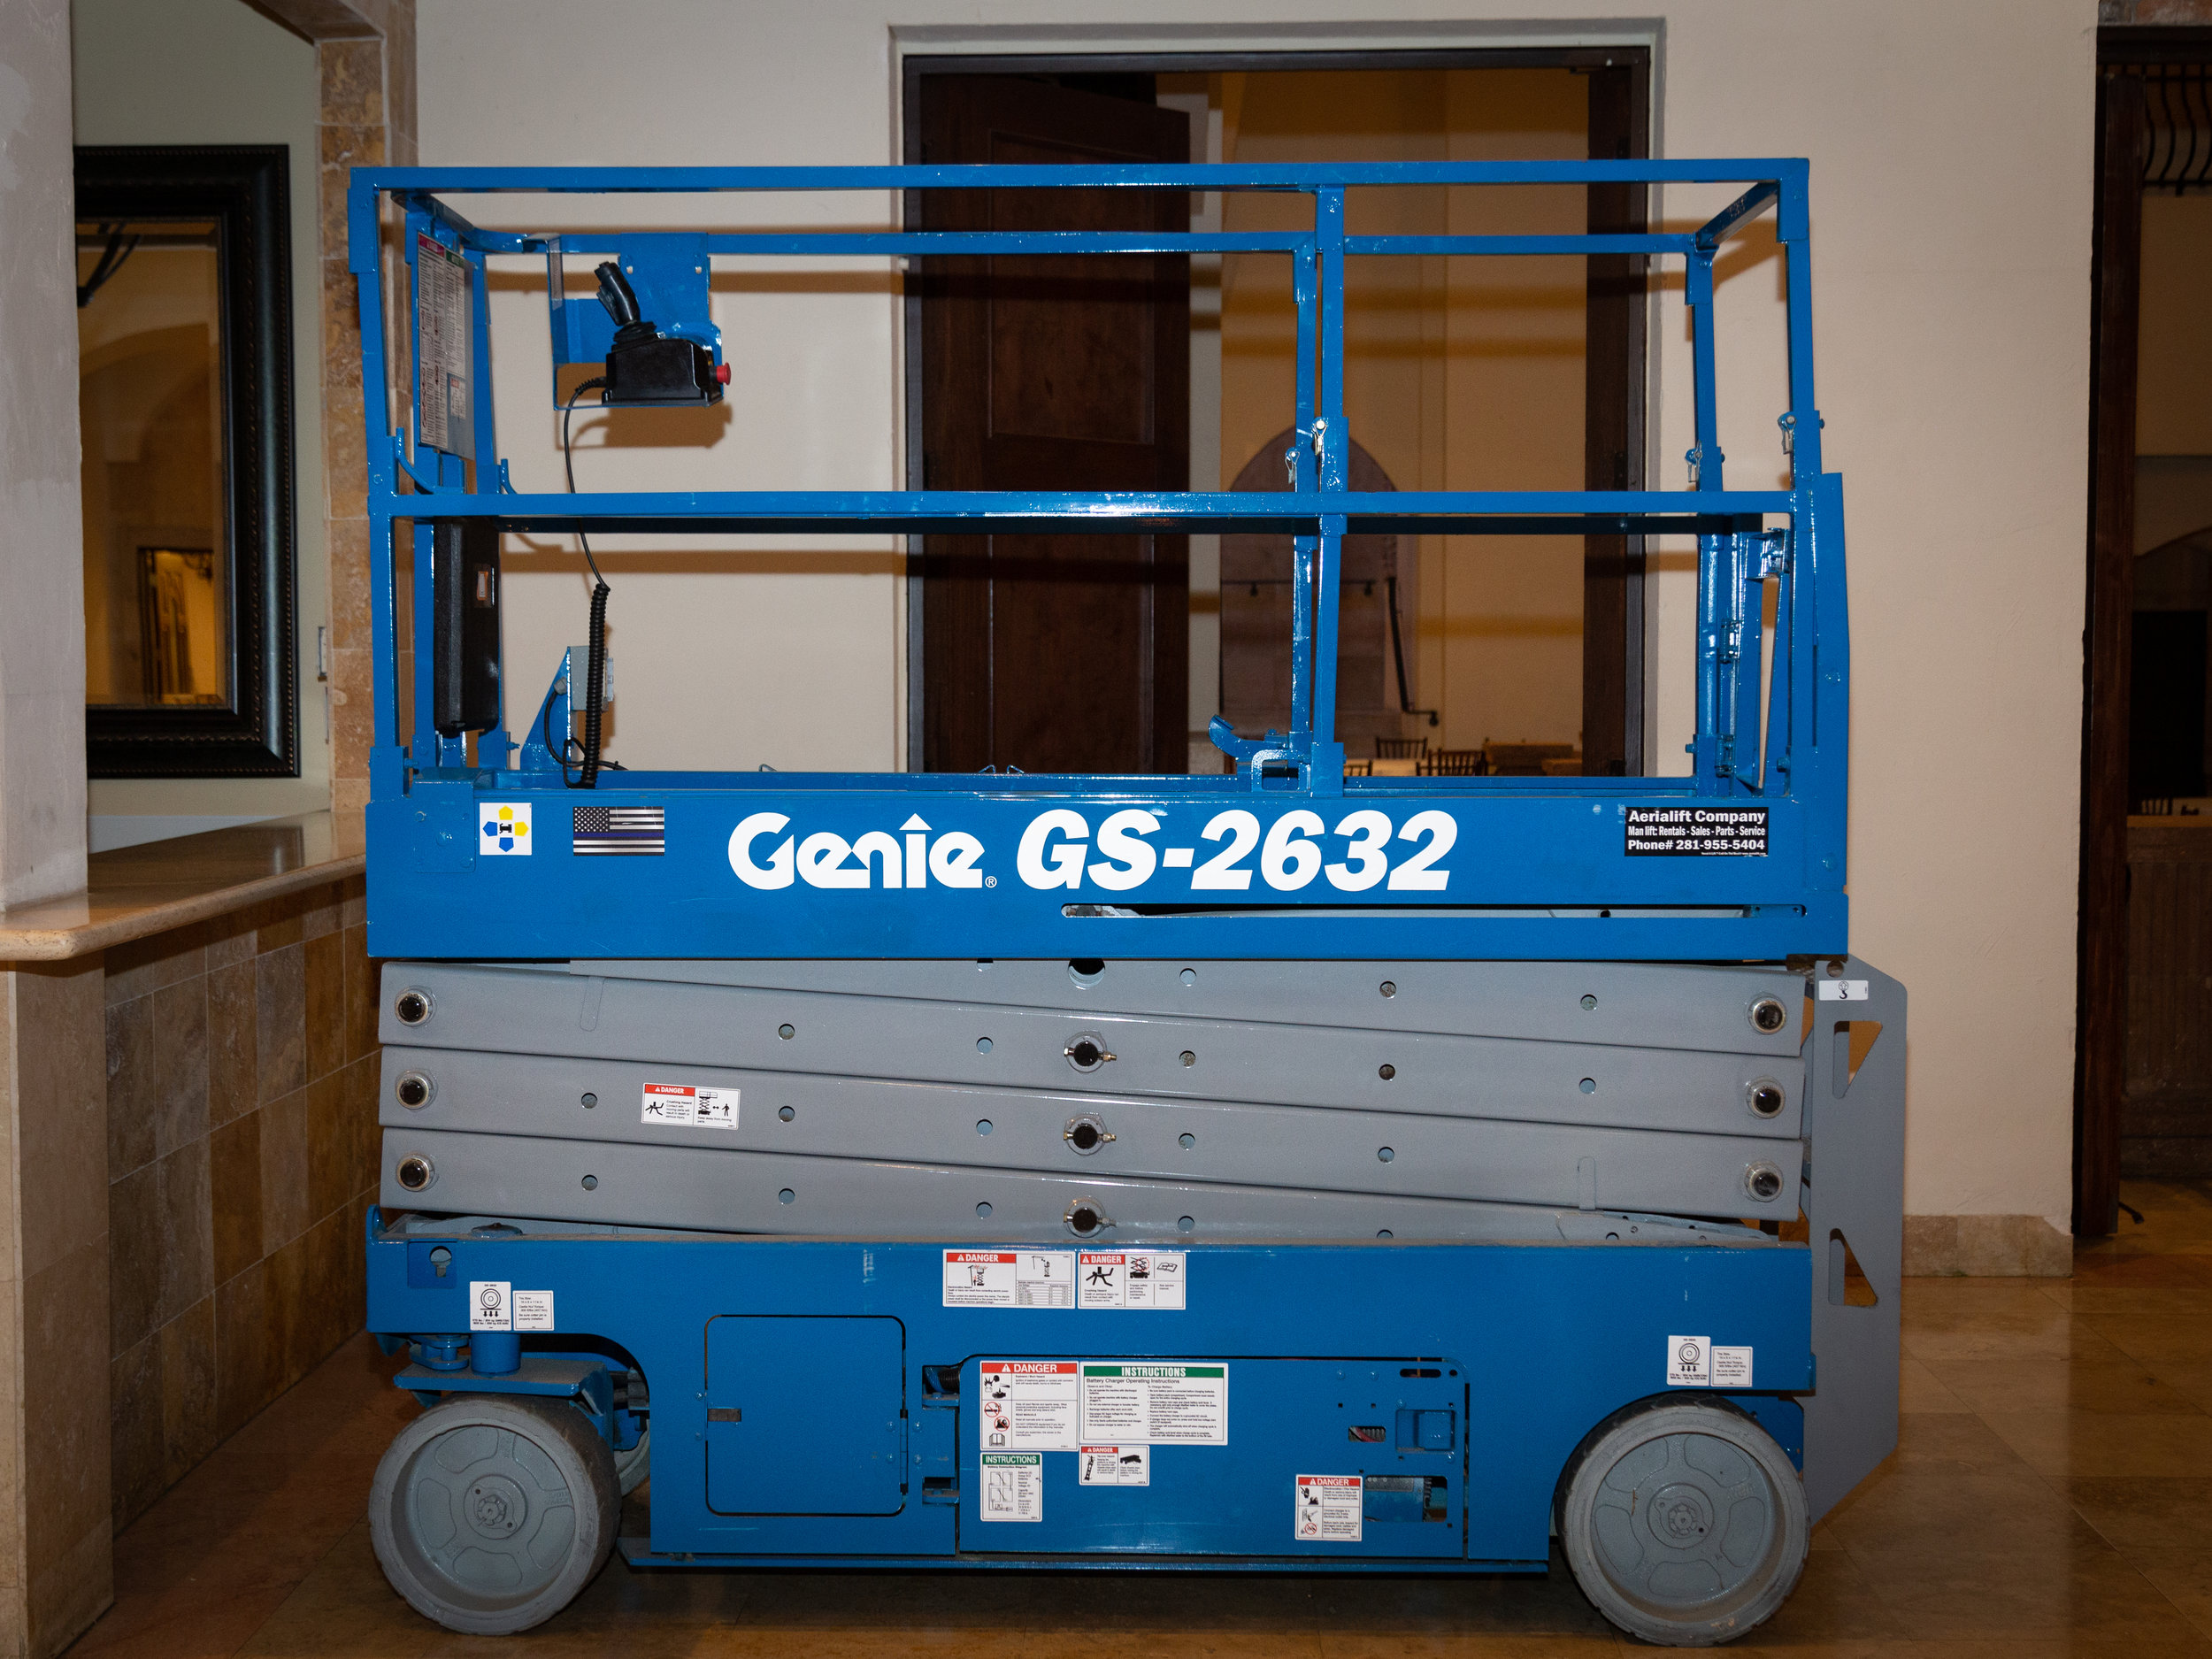 Scissor Lift - Two Person Lift $750